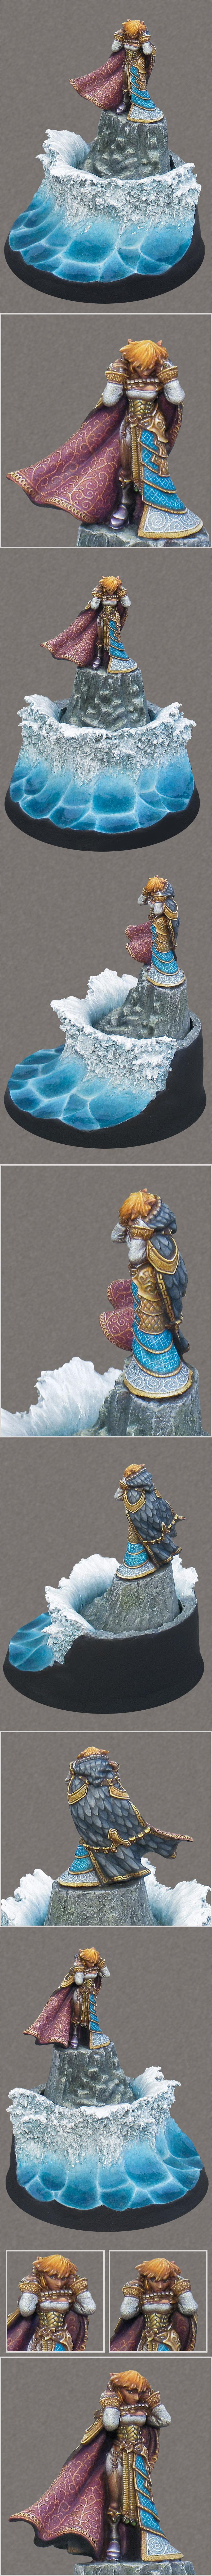 Ayana, Dress, Elves, Freehand, Girl, Hordes, Lady, Mercenary, Ornate, Privateer Press, Steampunk, Storm, Tidal, Warmachine, Water, Wave